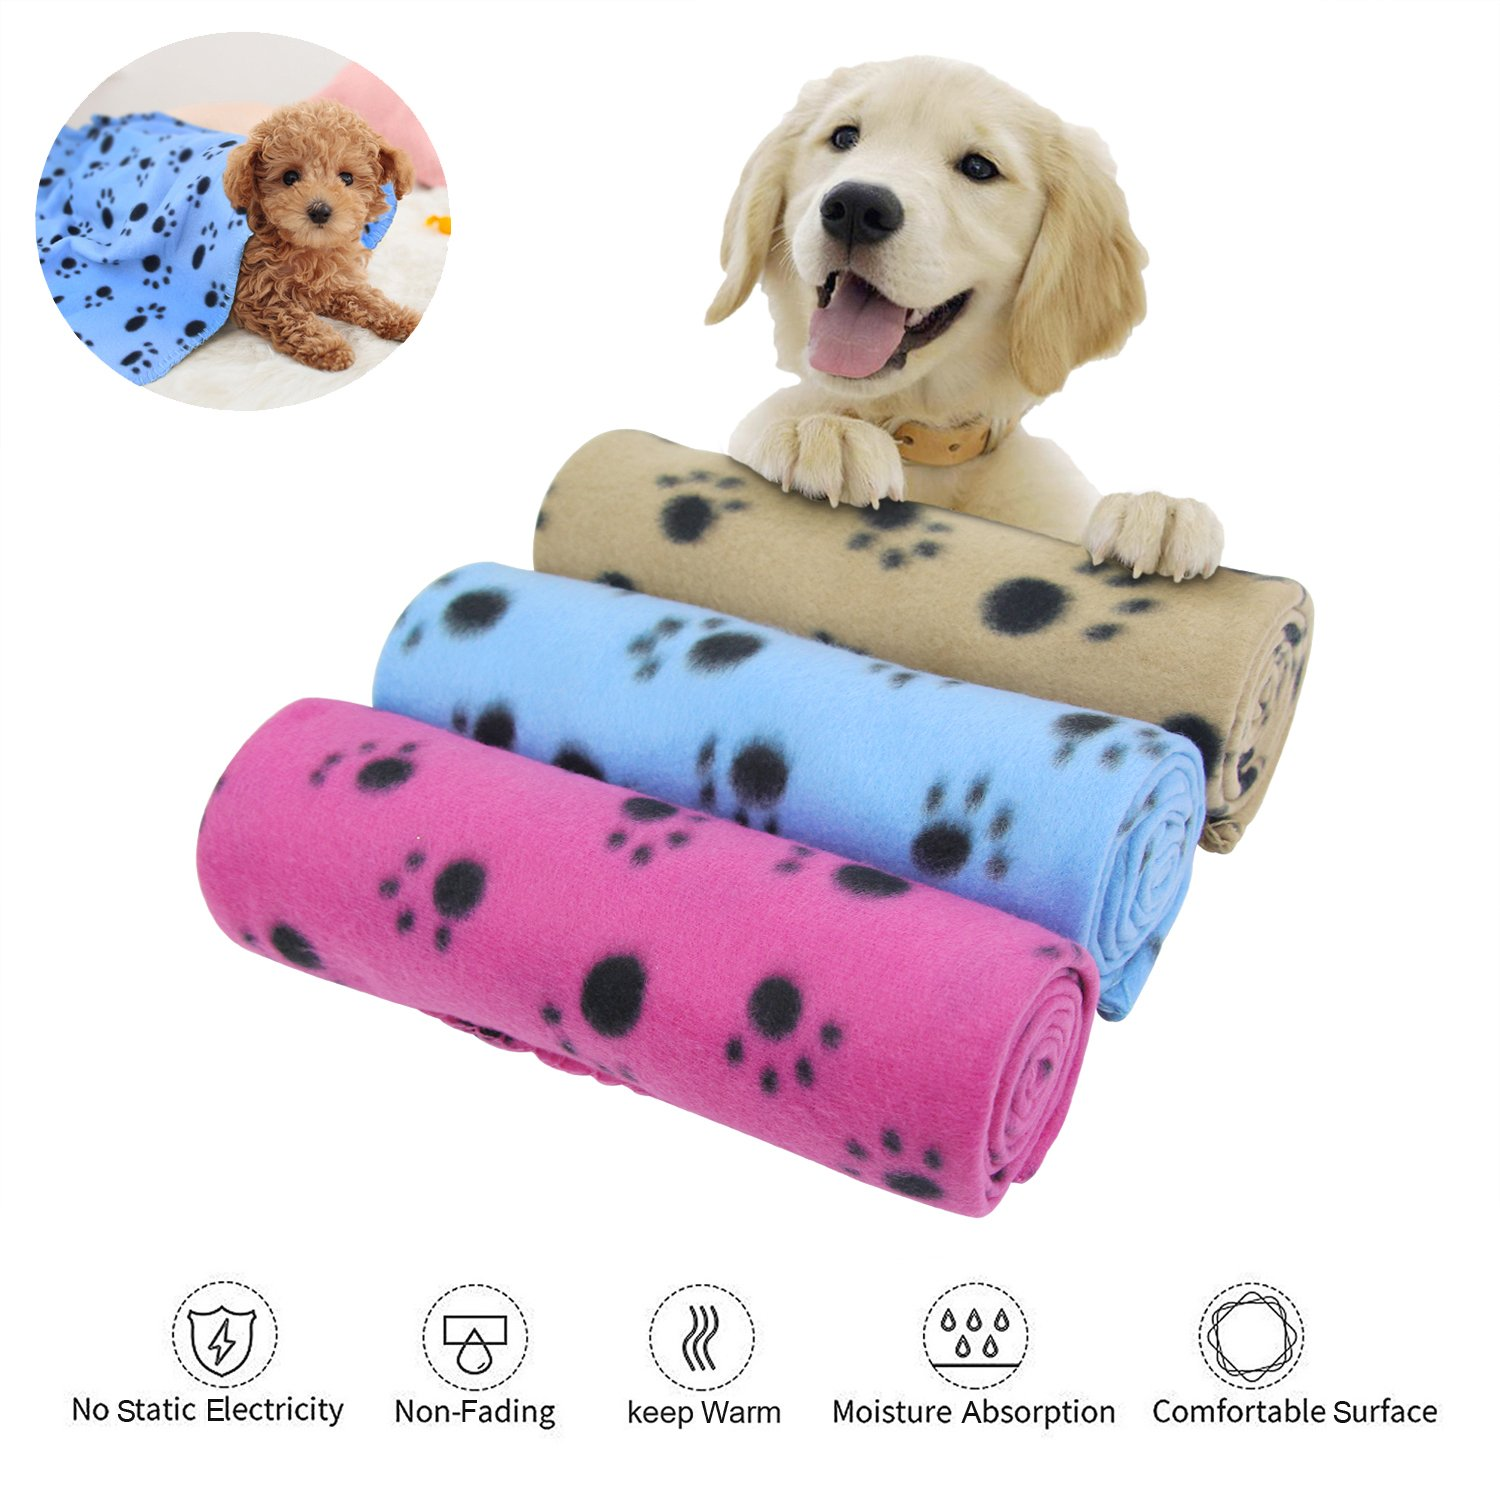 KYC 3 pack 40 x 28 '' Puppy Blanket Cushion Dog Cat Fleece Blankets Pet Sleep Mat Pad Bed Cover with Paw Print Kitten Soft Warm Blanket for Animals (Mixed A) by KYC (Image #1)